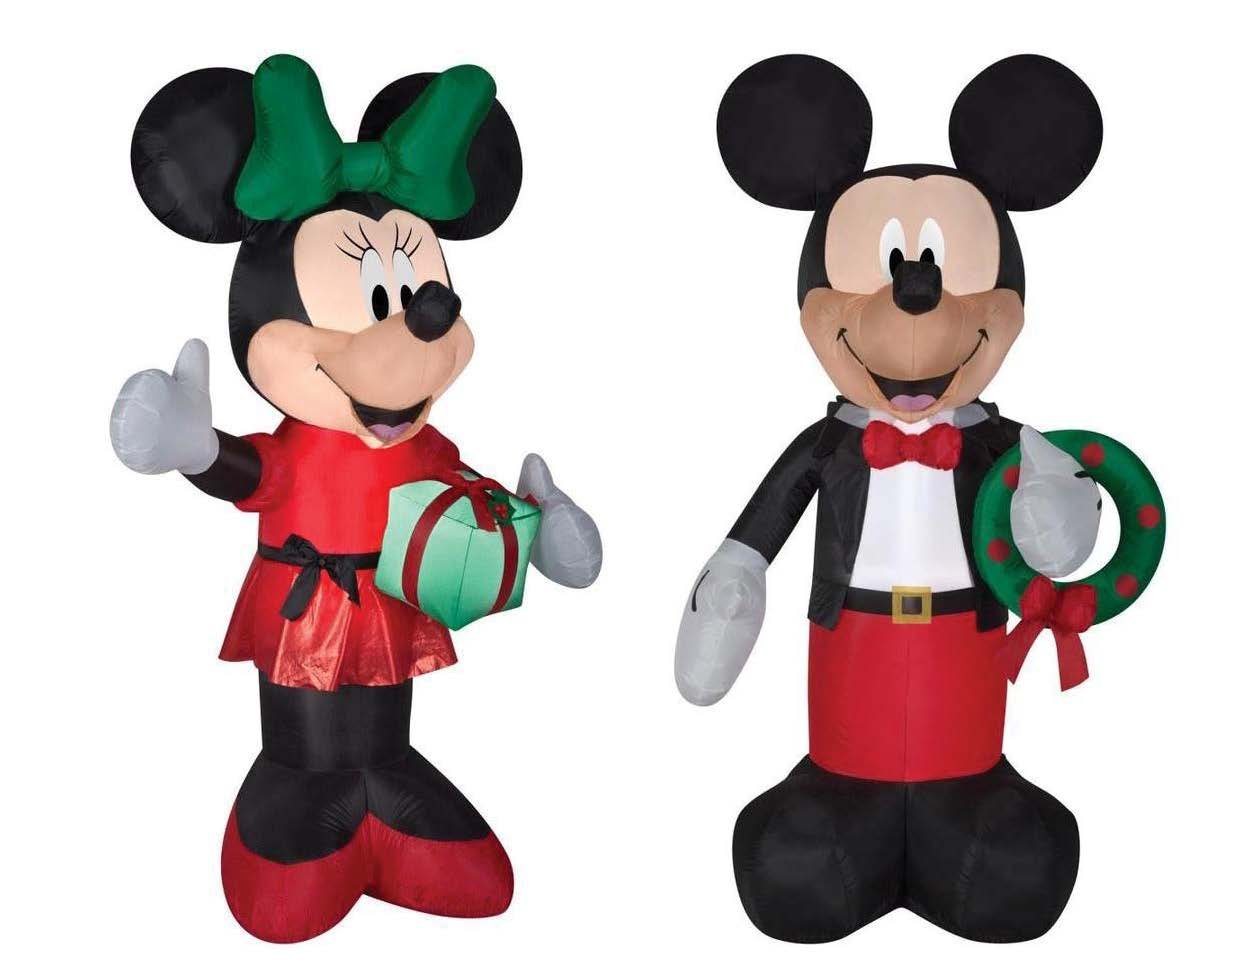 Inflatable Mickey And Minnie Christmas Yard Decorations, 6 Feet Tall, Self Inflatable With Energy Efficient LED by Gemmy